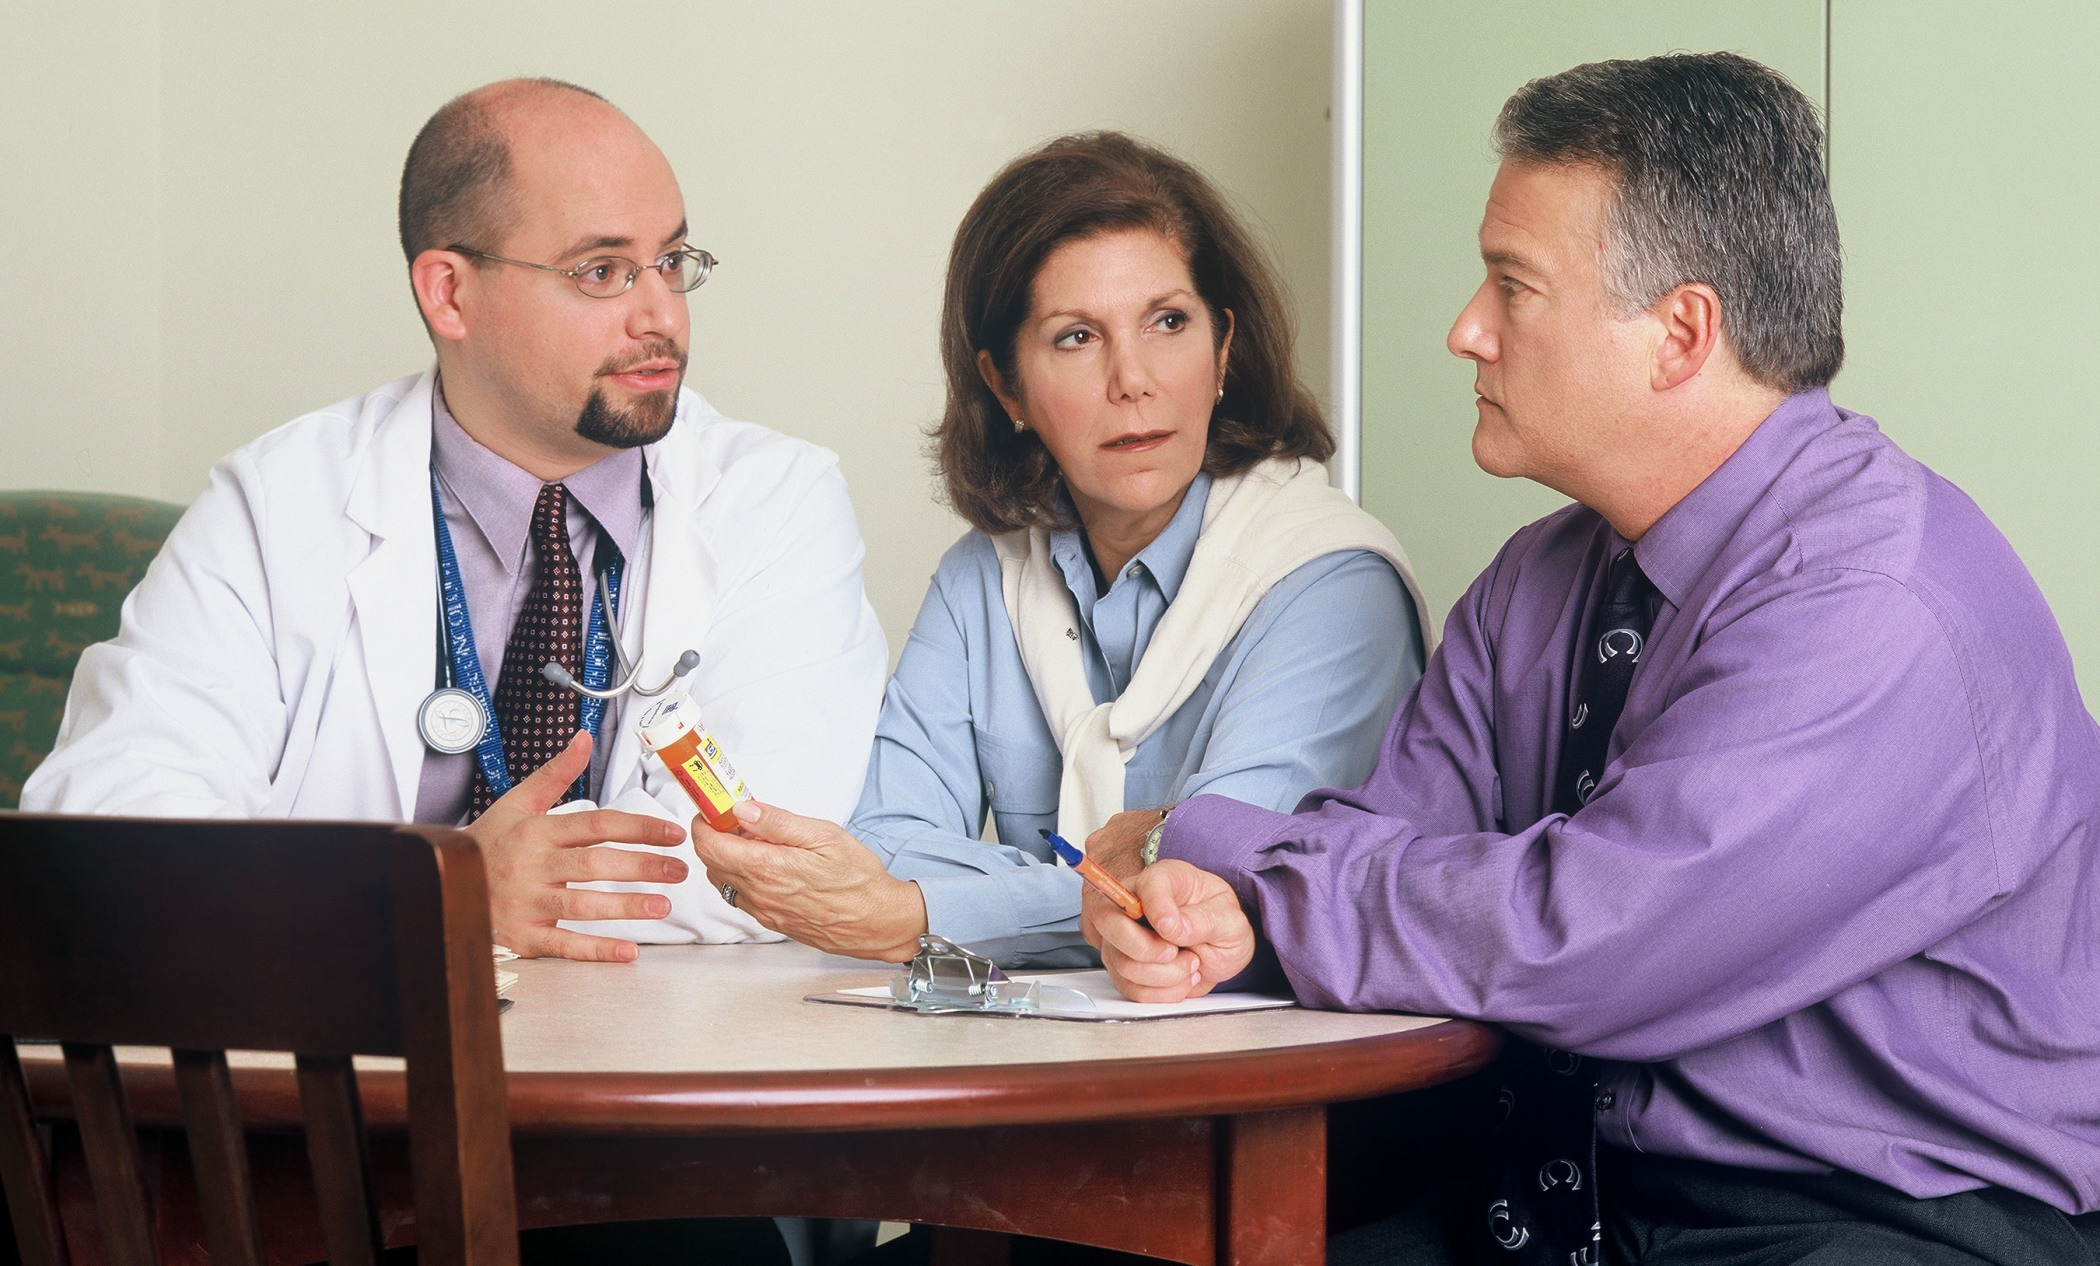 Couple consults with physician to determine treatment strategies